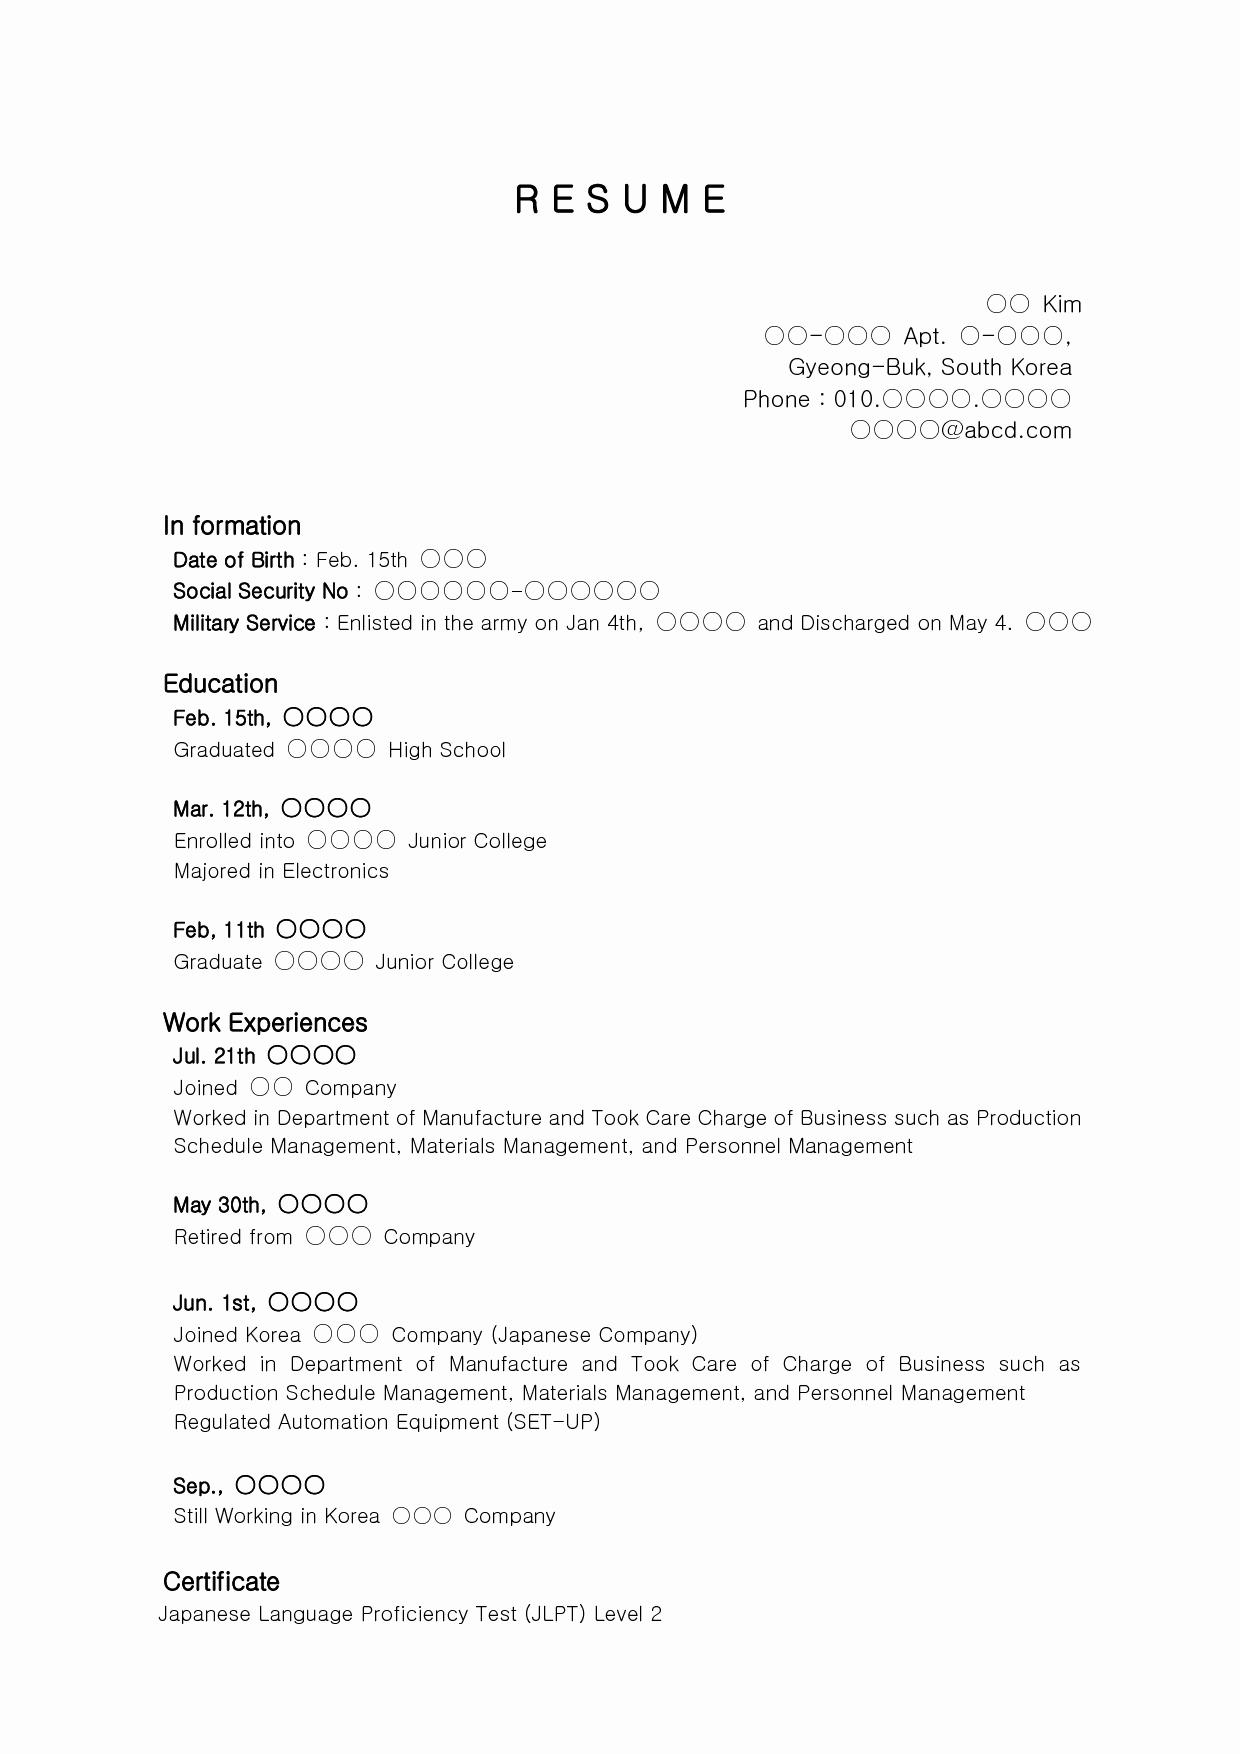 Free Resume Templates For Highschool Graduates